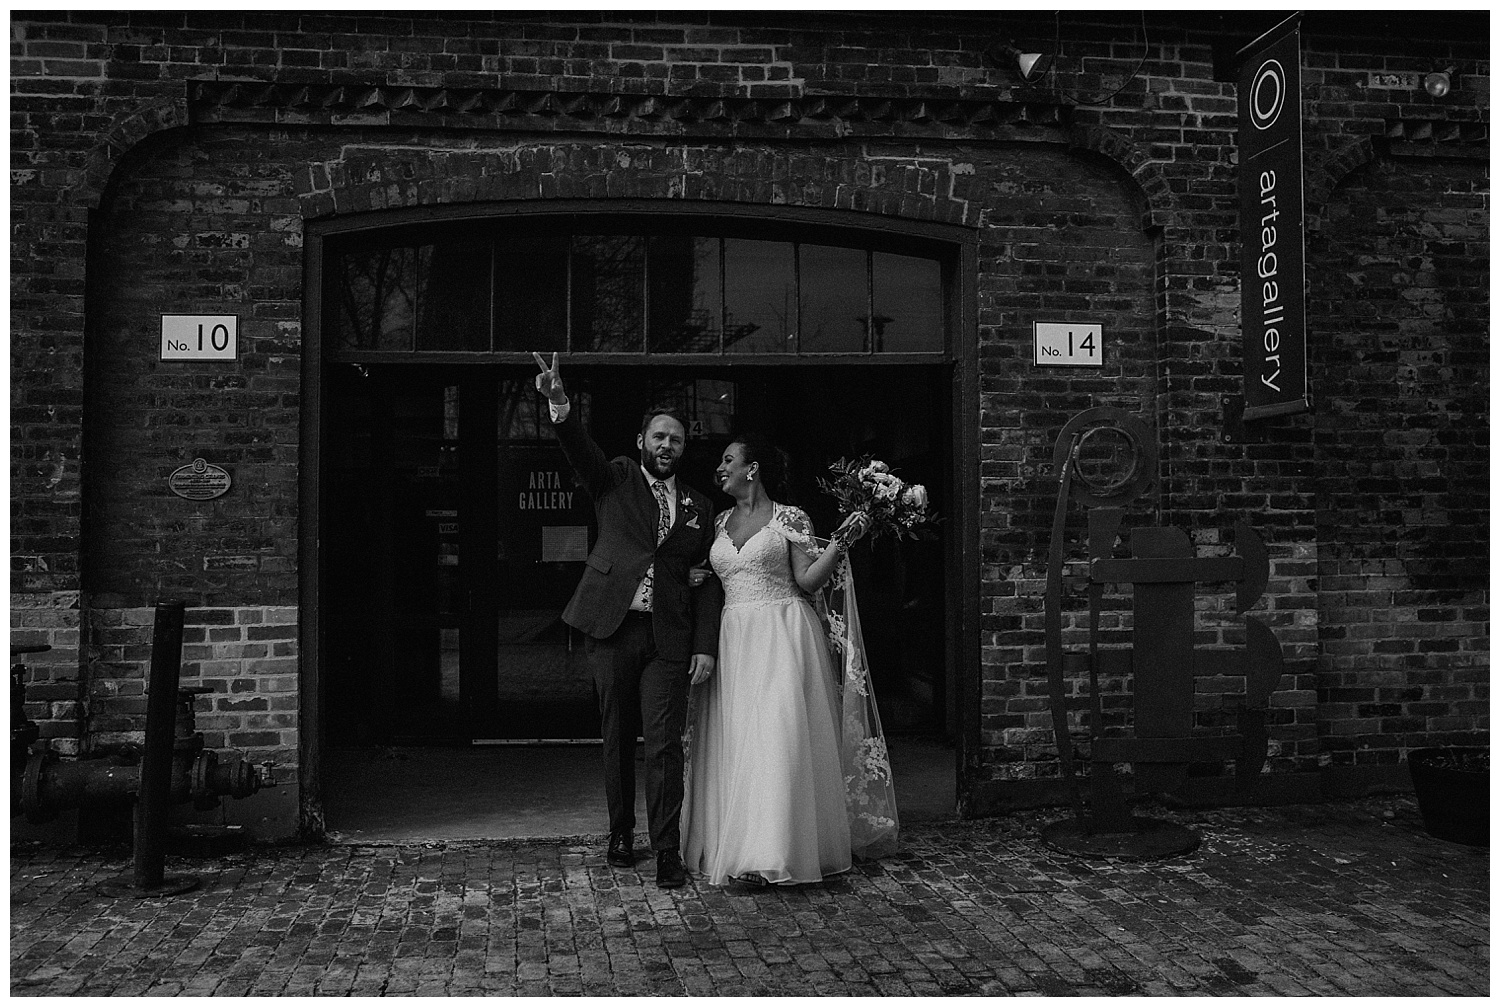 Katie Marie Photography | Archeo Wedding Arta Gallery Wedding | Distillery District Wedding | Toronto Wedding Photographer | Hamilton Toronto Ontario Wedding Photographer |_0114.jpg